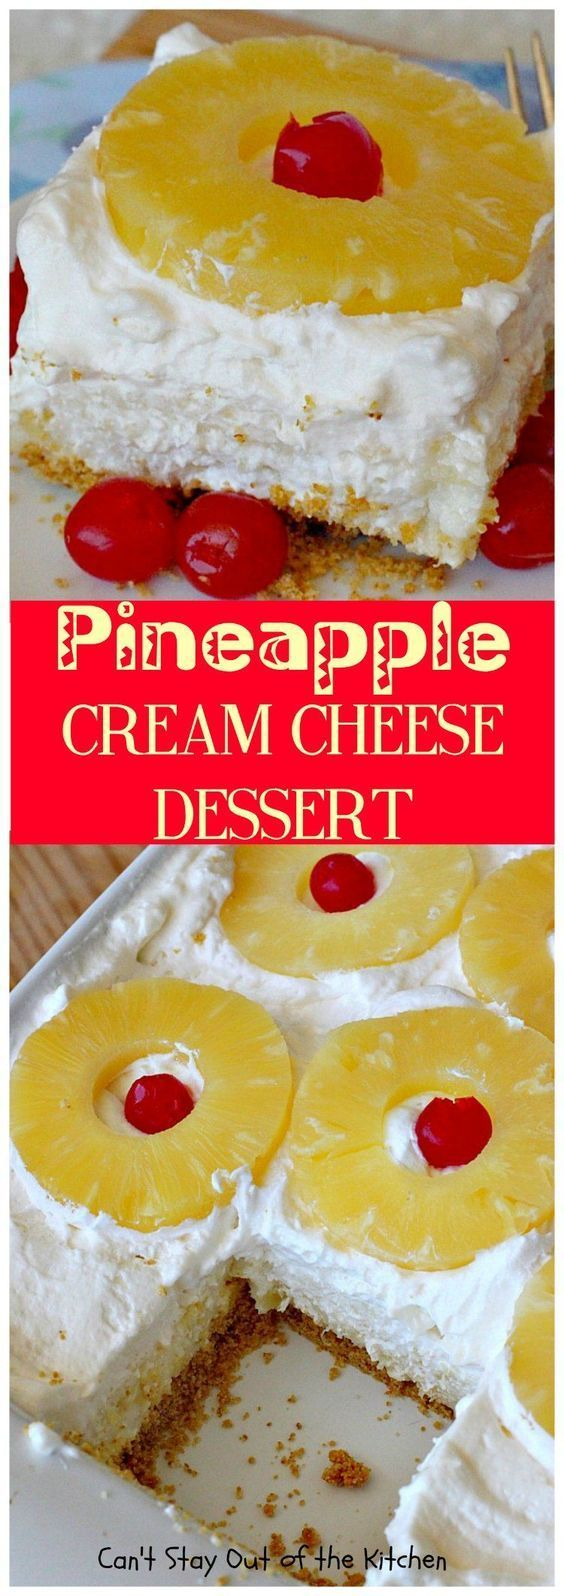 Pineapple Cream Cheese Dessert | Can't Stay Out of the Kitchen | fabulous #dessert made with a graham cracker crust, a #pineapple #creamcheese & gelatin layer, then it's topped with Cool Whip & pineapple slices. Great dessert for pineapple lovers. (Pinned 2.8k)